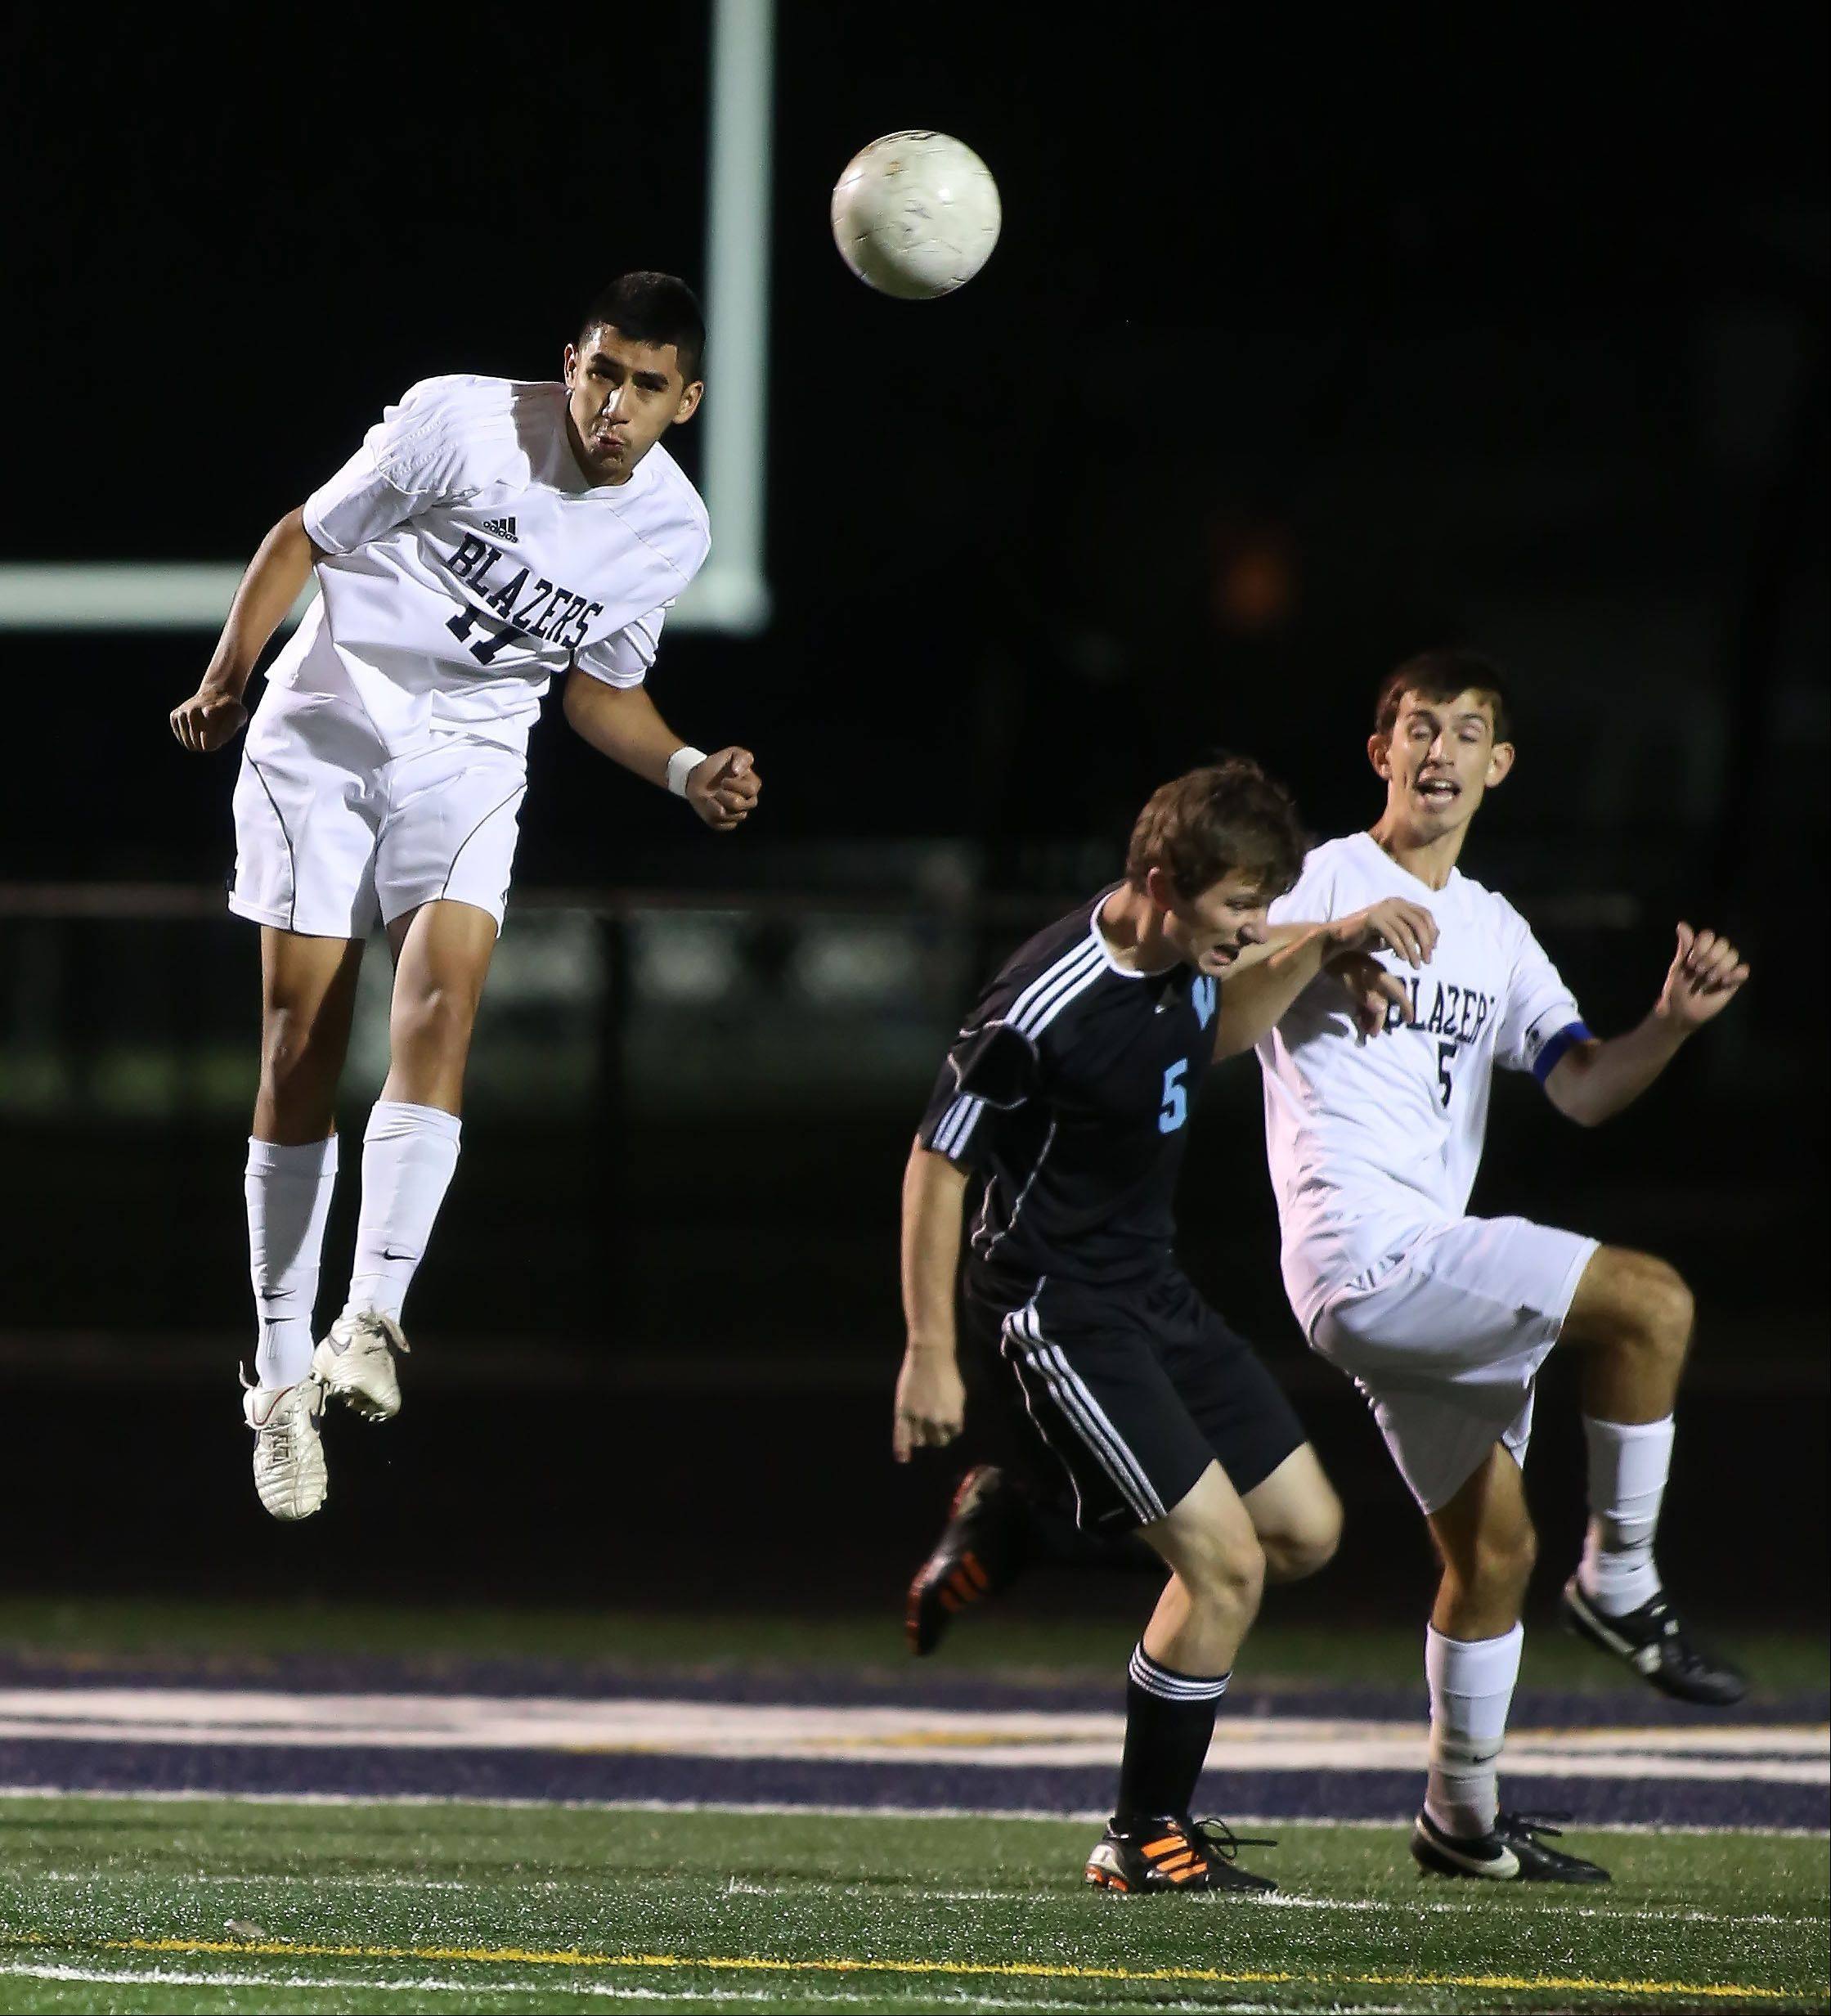 Sergio Marin of Addison Trail, left, heads the ball in boys soccer action against Willowbrook on Tuesday in Addison.